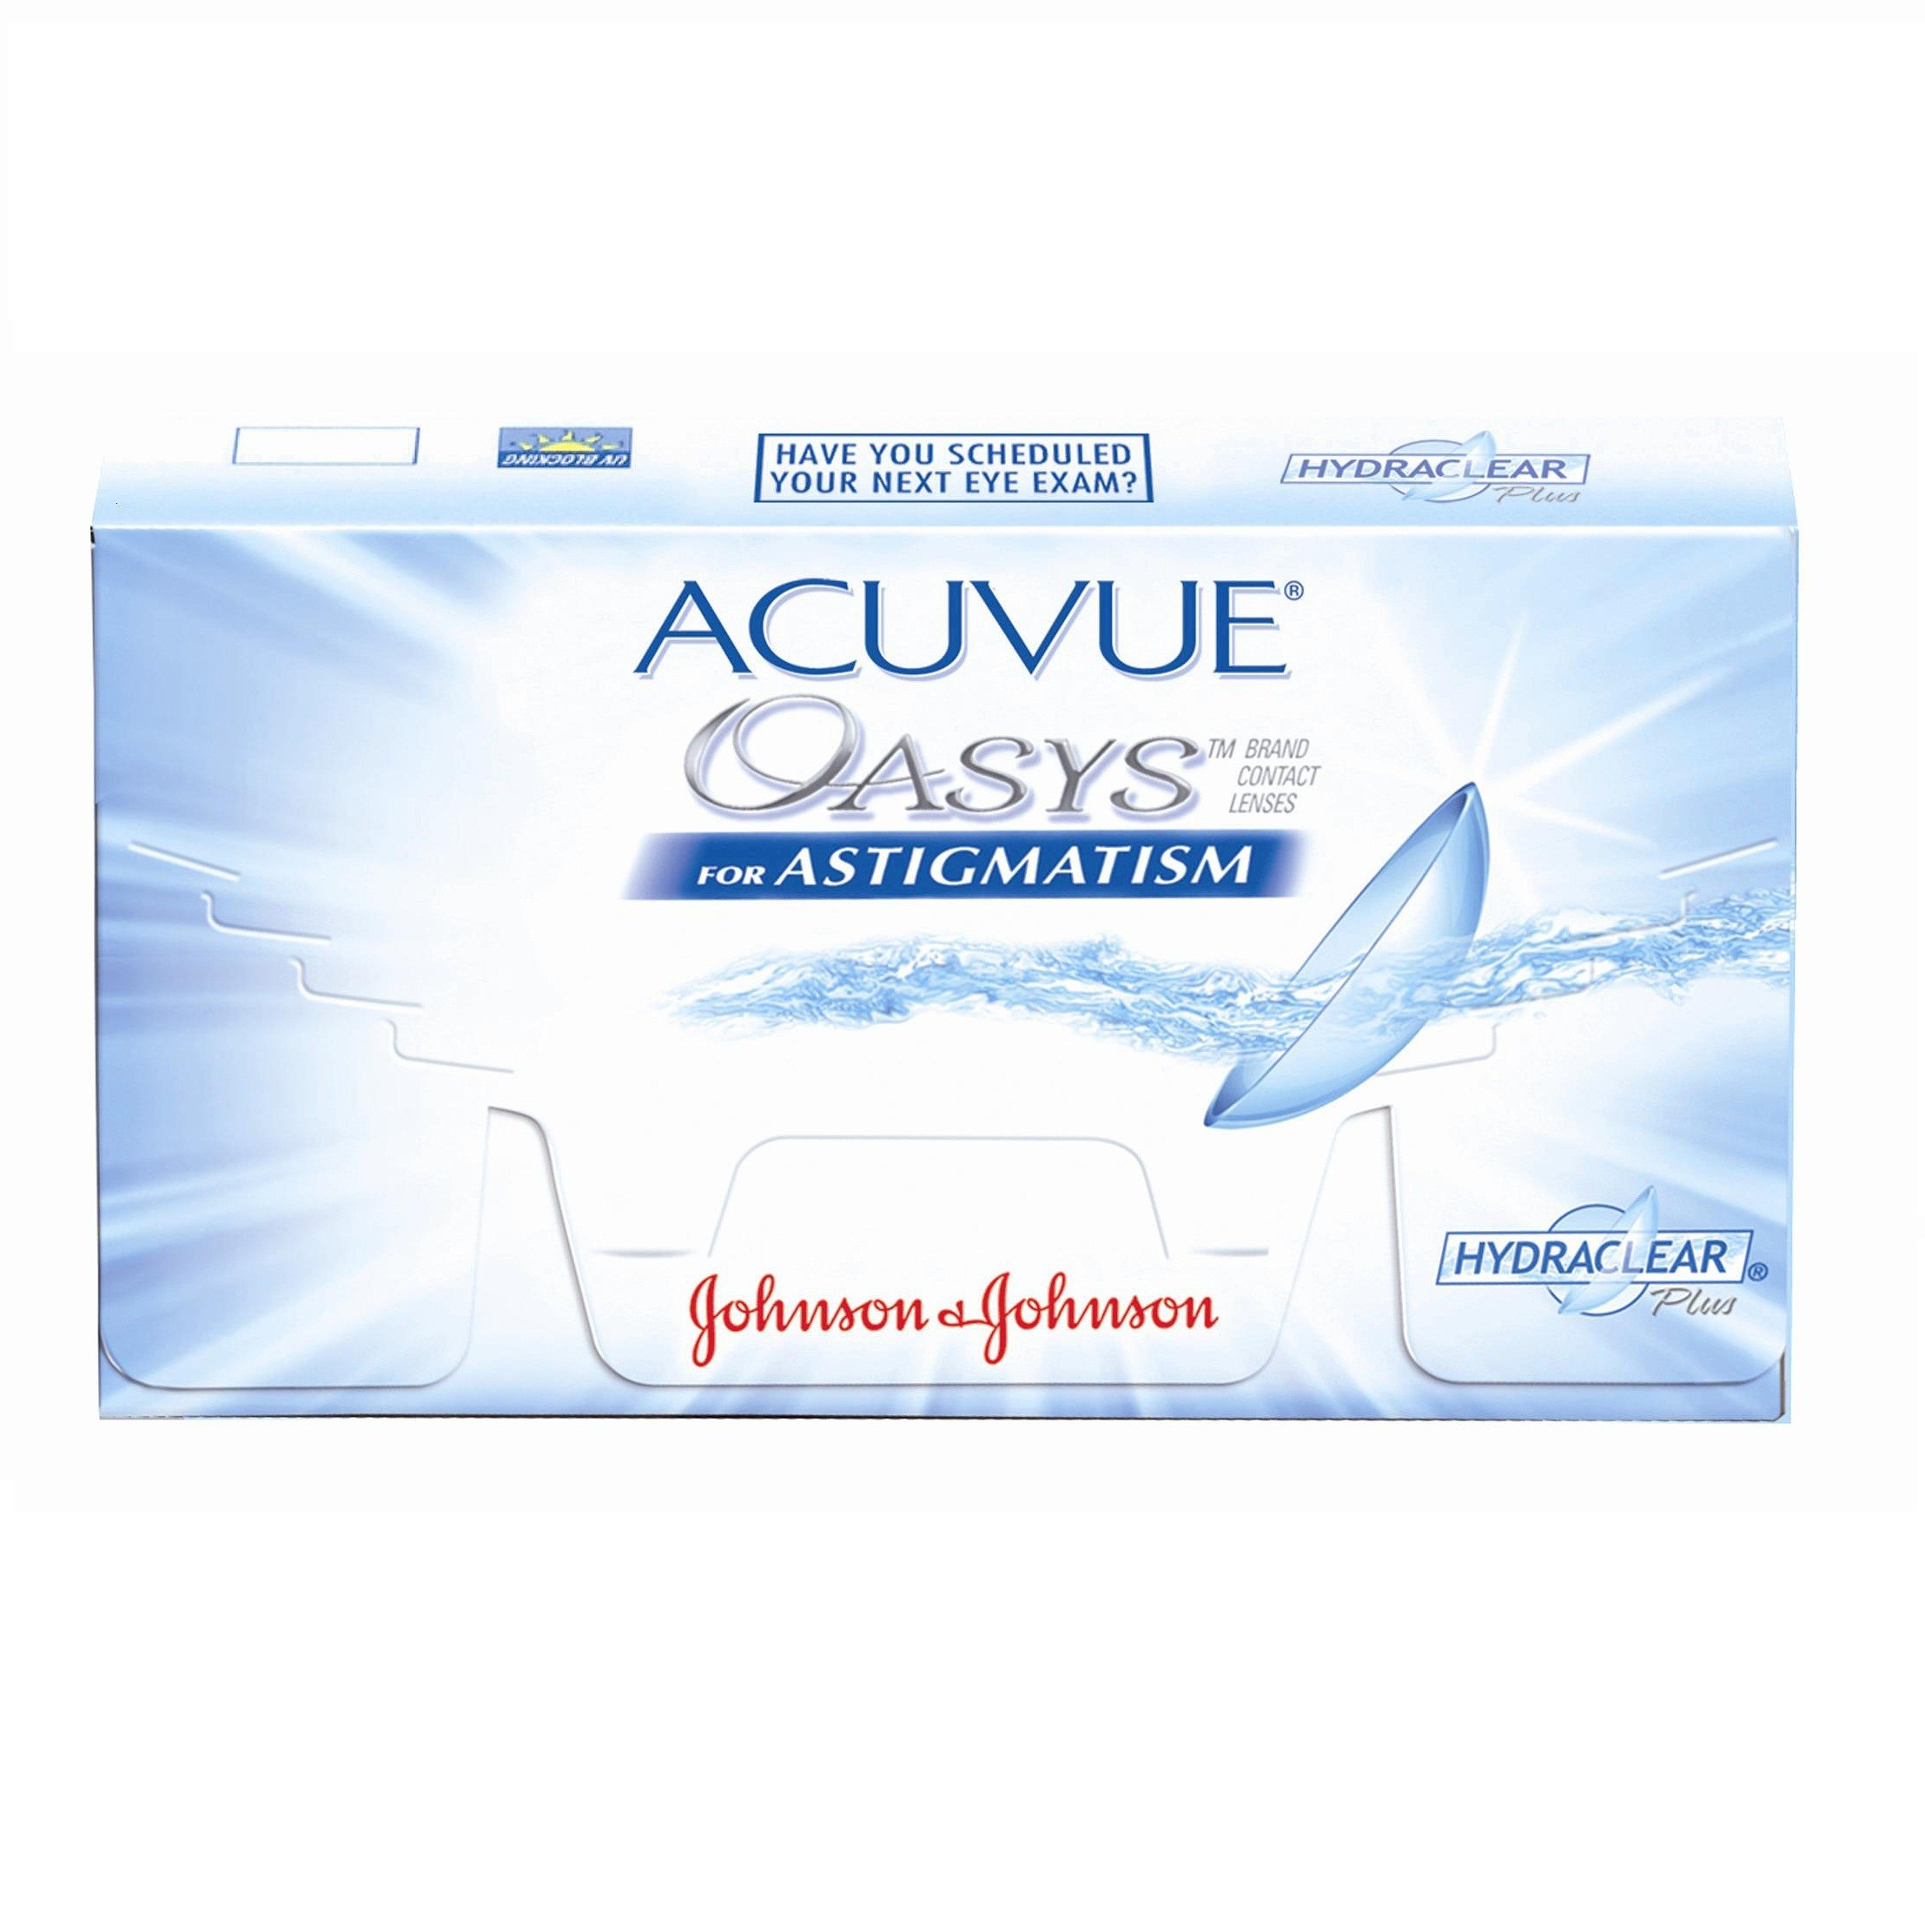 5dfc8c3e722 JezCentre - Acuvue Oasys for Astigmatism (6 pack)